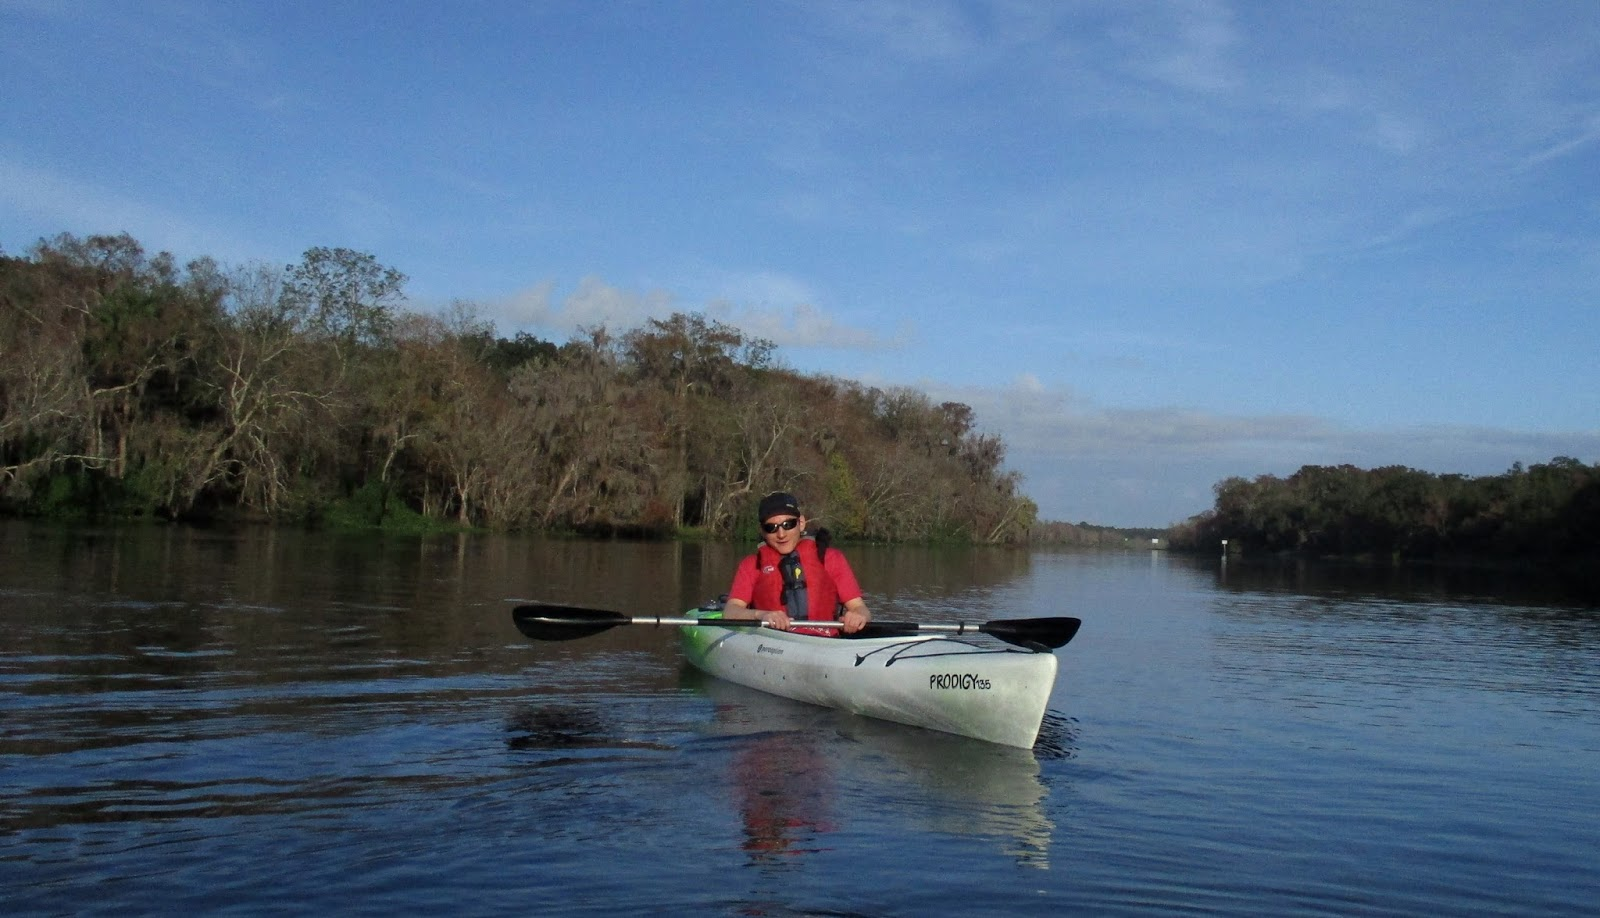 Pity, canoeing around redhead fl have